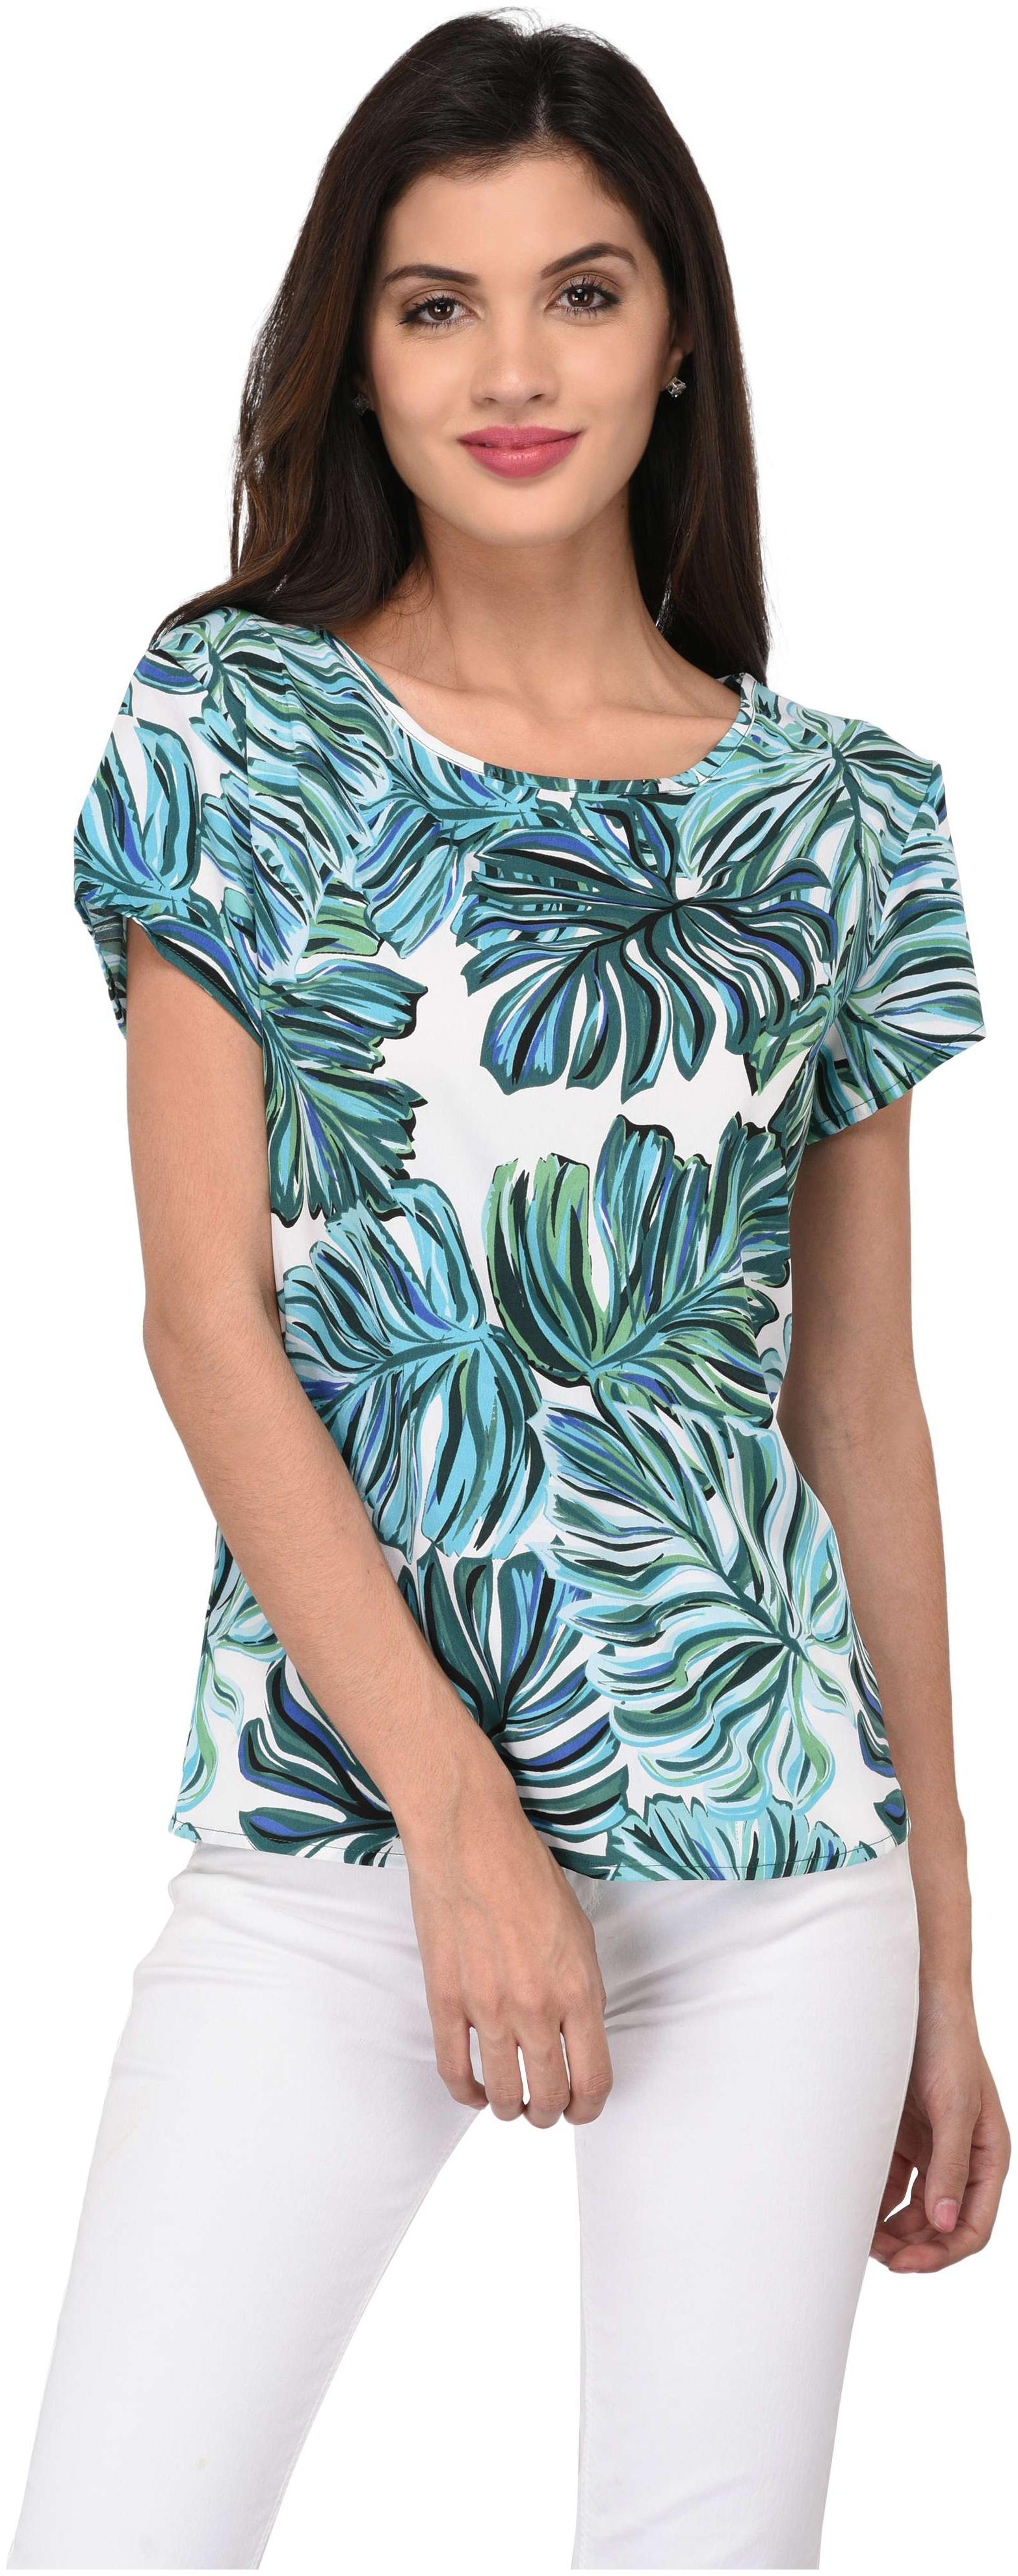 Vashit WomenWhite Floral Printed Casual Top